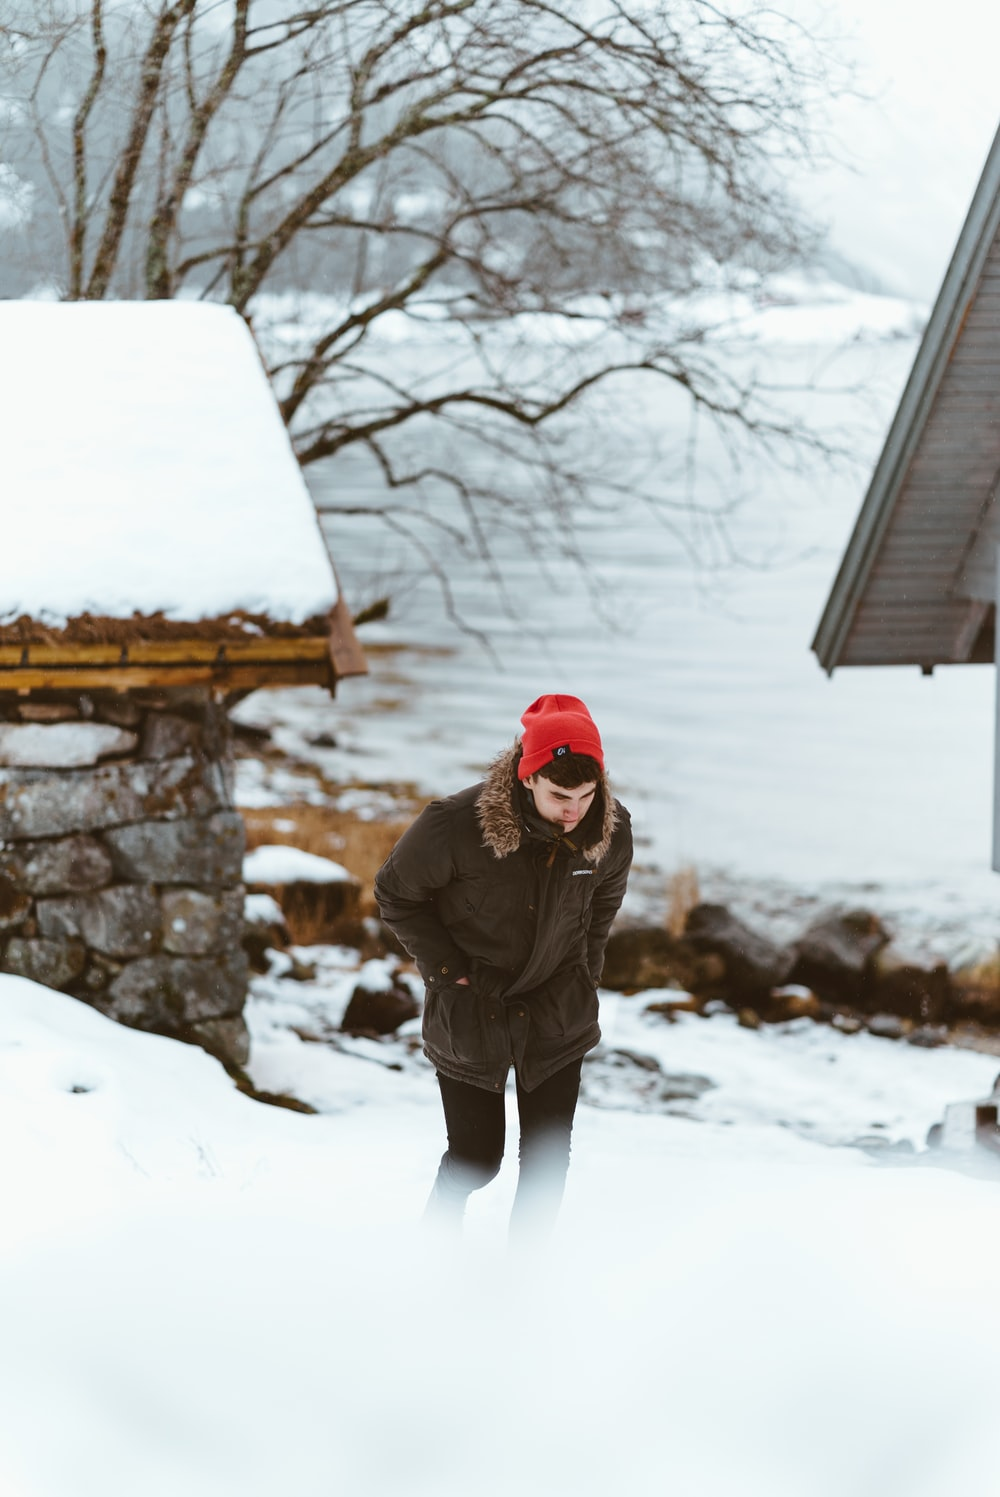 A man wearing a winter coat and beanie hat walking in the snow by a lake in Flåm